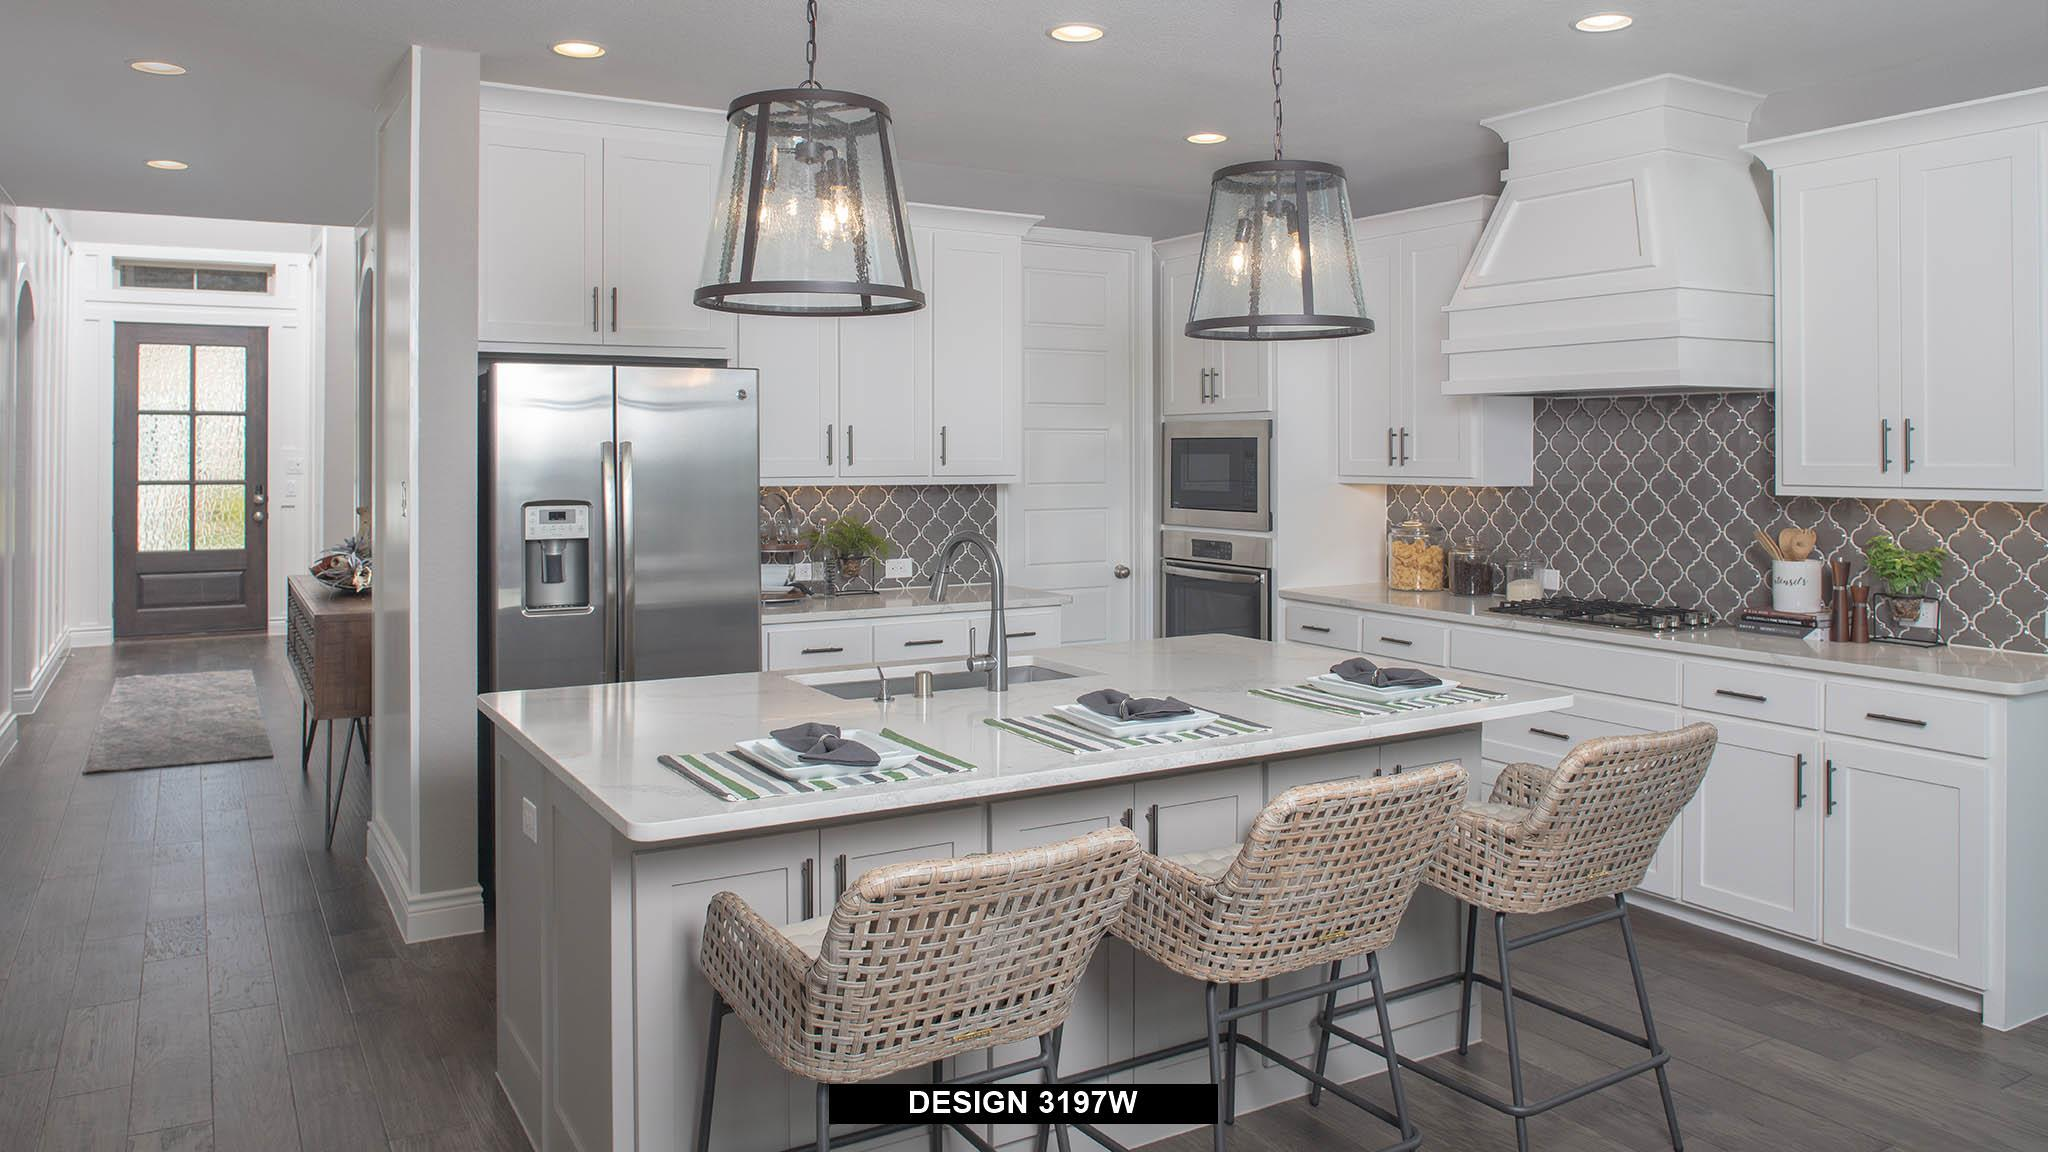 Kitchen featured in the 3197W By Perry Homes in Houston, TX